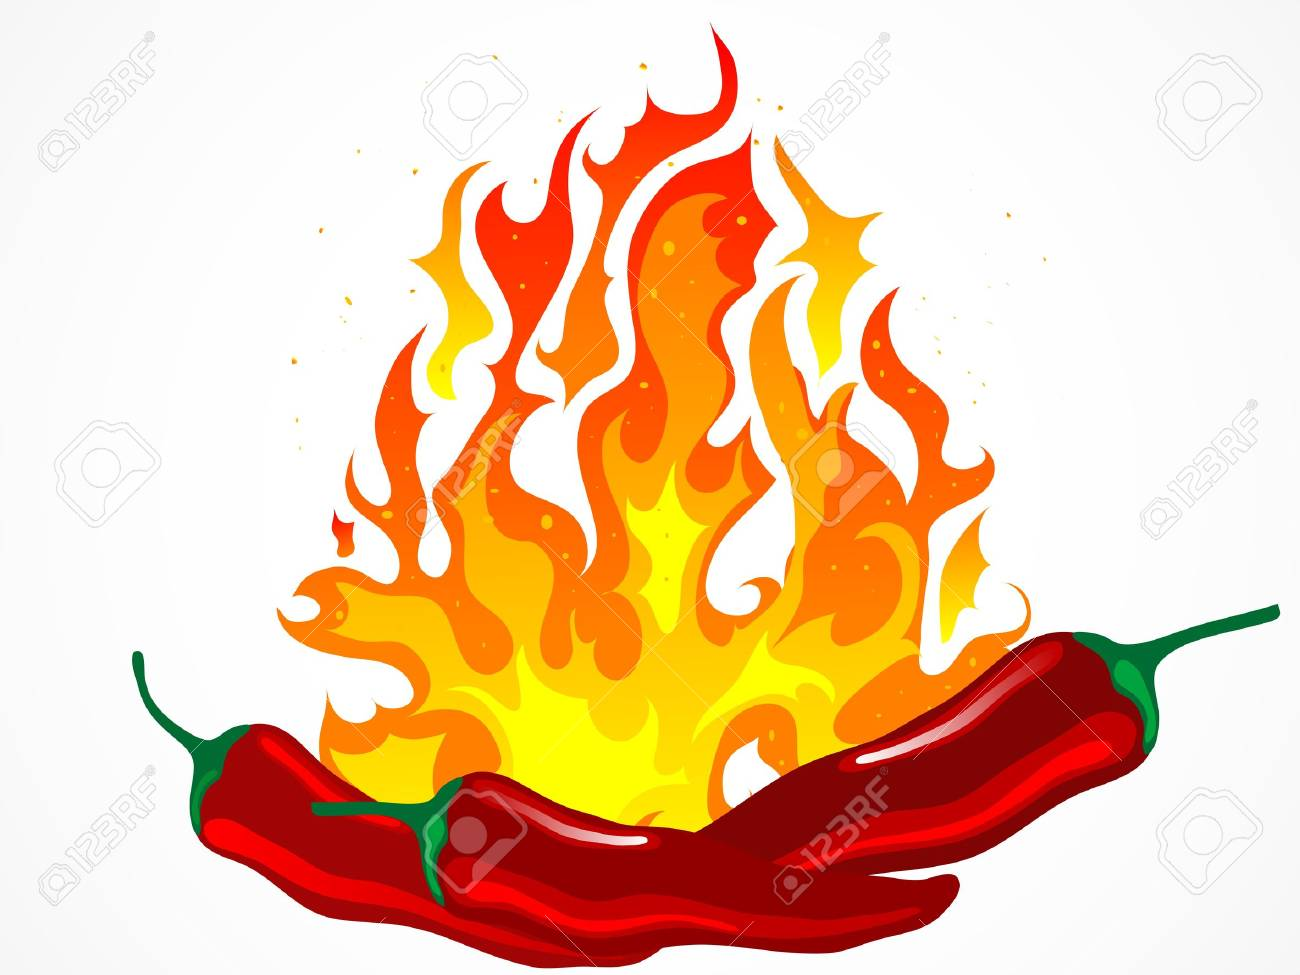 d292d390f5a2 Fiery red hot chilli peppers Stock Vector - 11673826